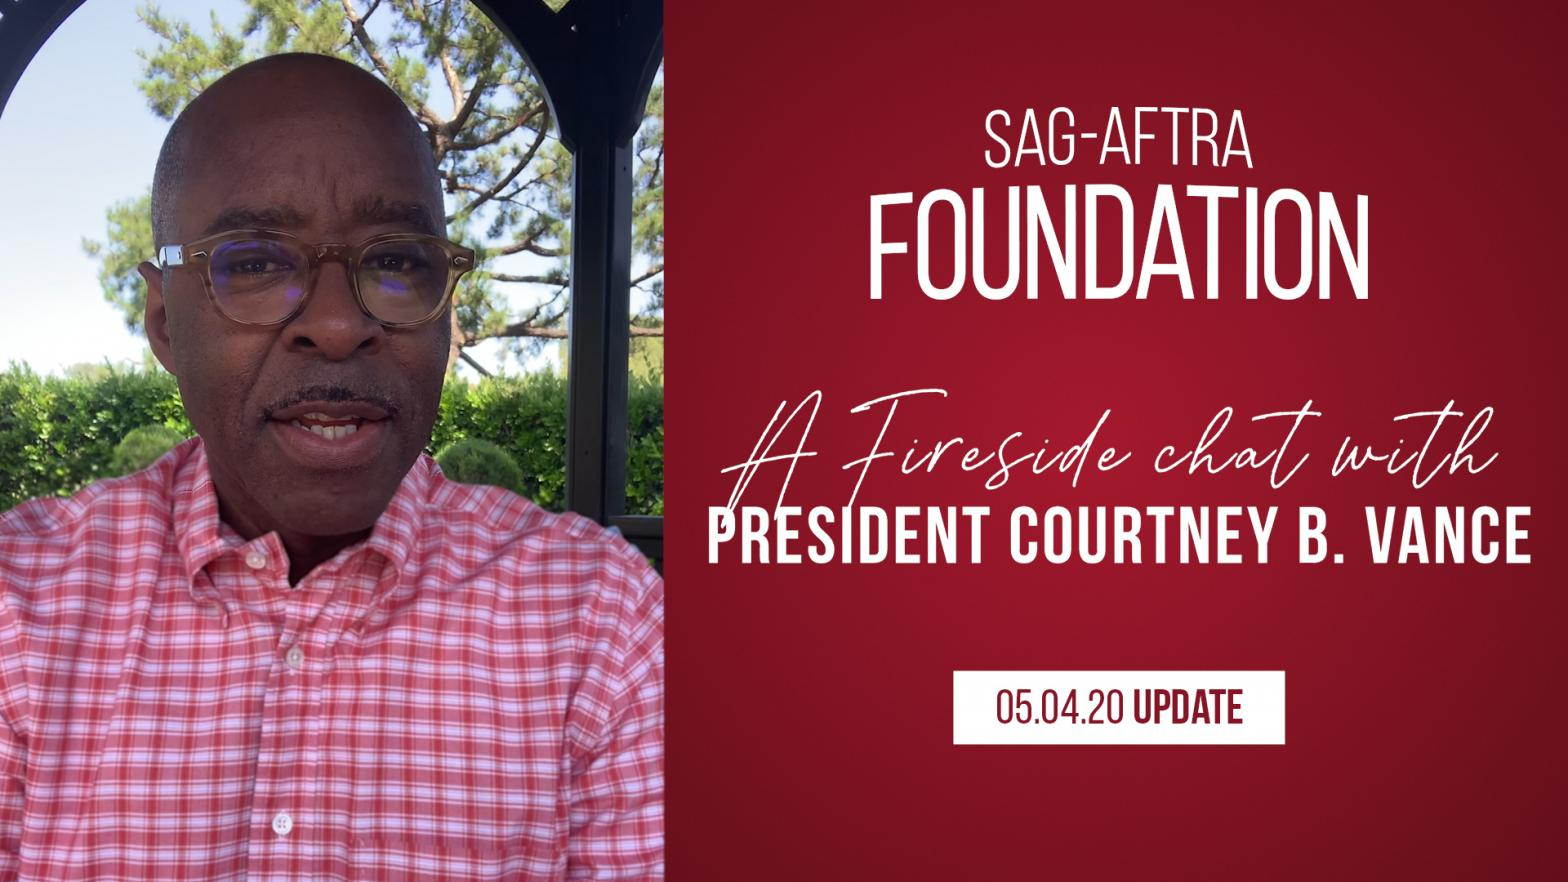 """SAG-AFTRA Foundation presents: A Fireside chat with President Courtney B. Vance 05.04.20 Update"" on right in white text and red background. Vance on left in a red and white plaid shirt"